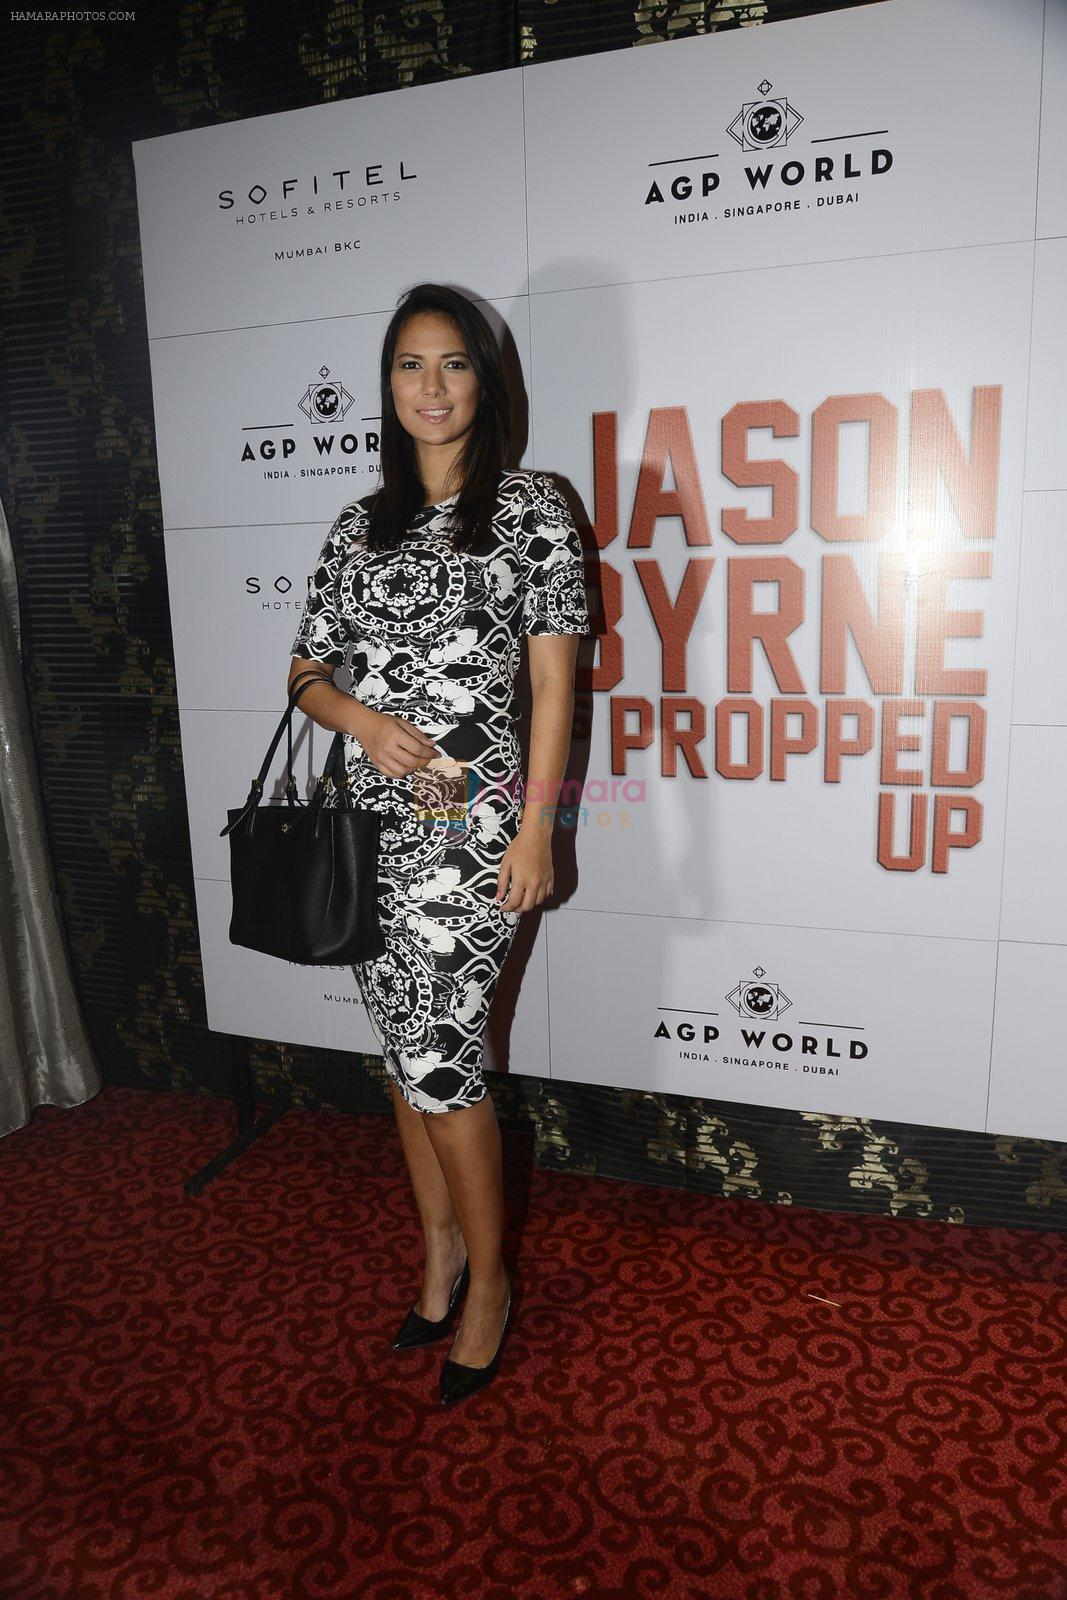 Rochelle Rao at Jason Byrne stand up comedian's premiere show on 15th Sept 2016